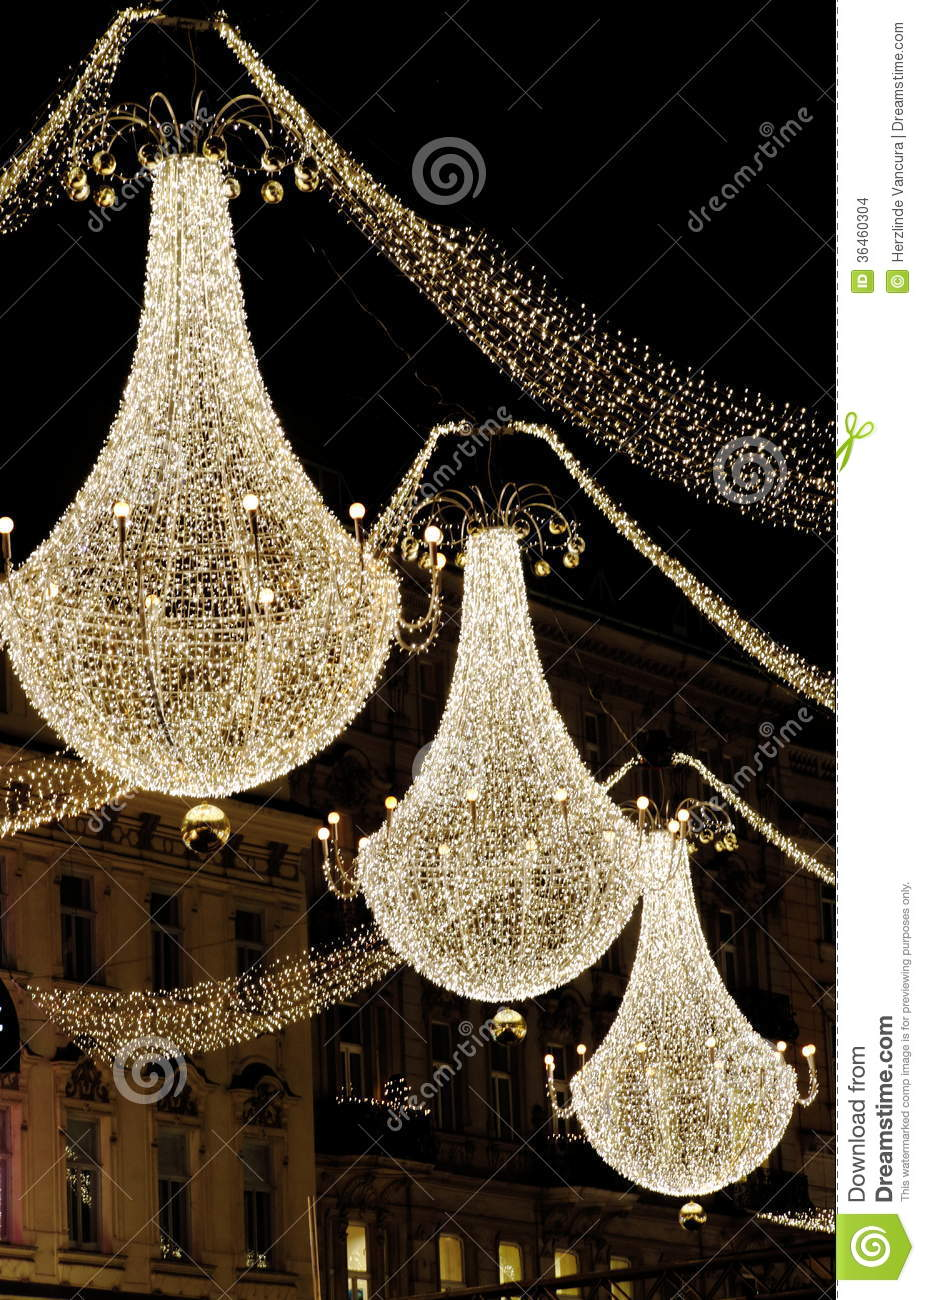 download christmas chandeliers stock photo image of white vienna 36460304 - How To Decorate A Chandelier For Christmas